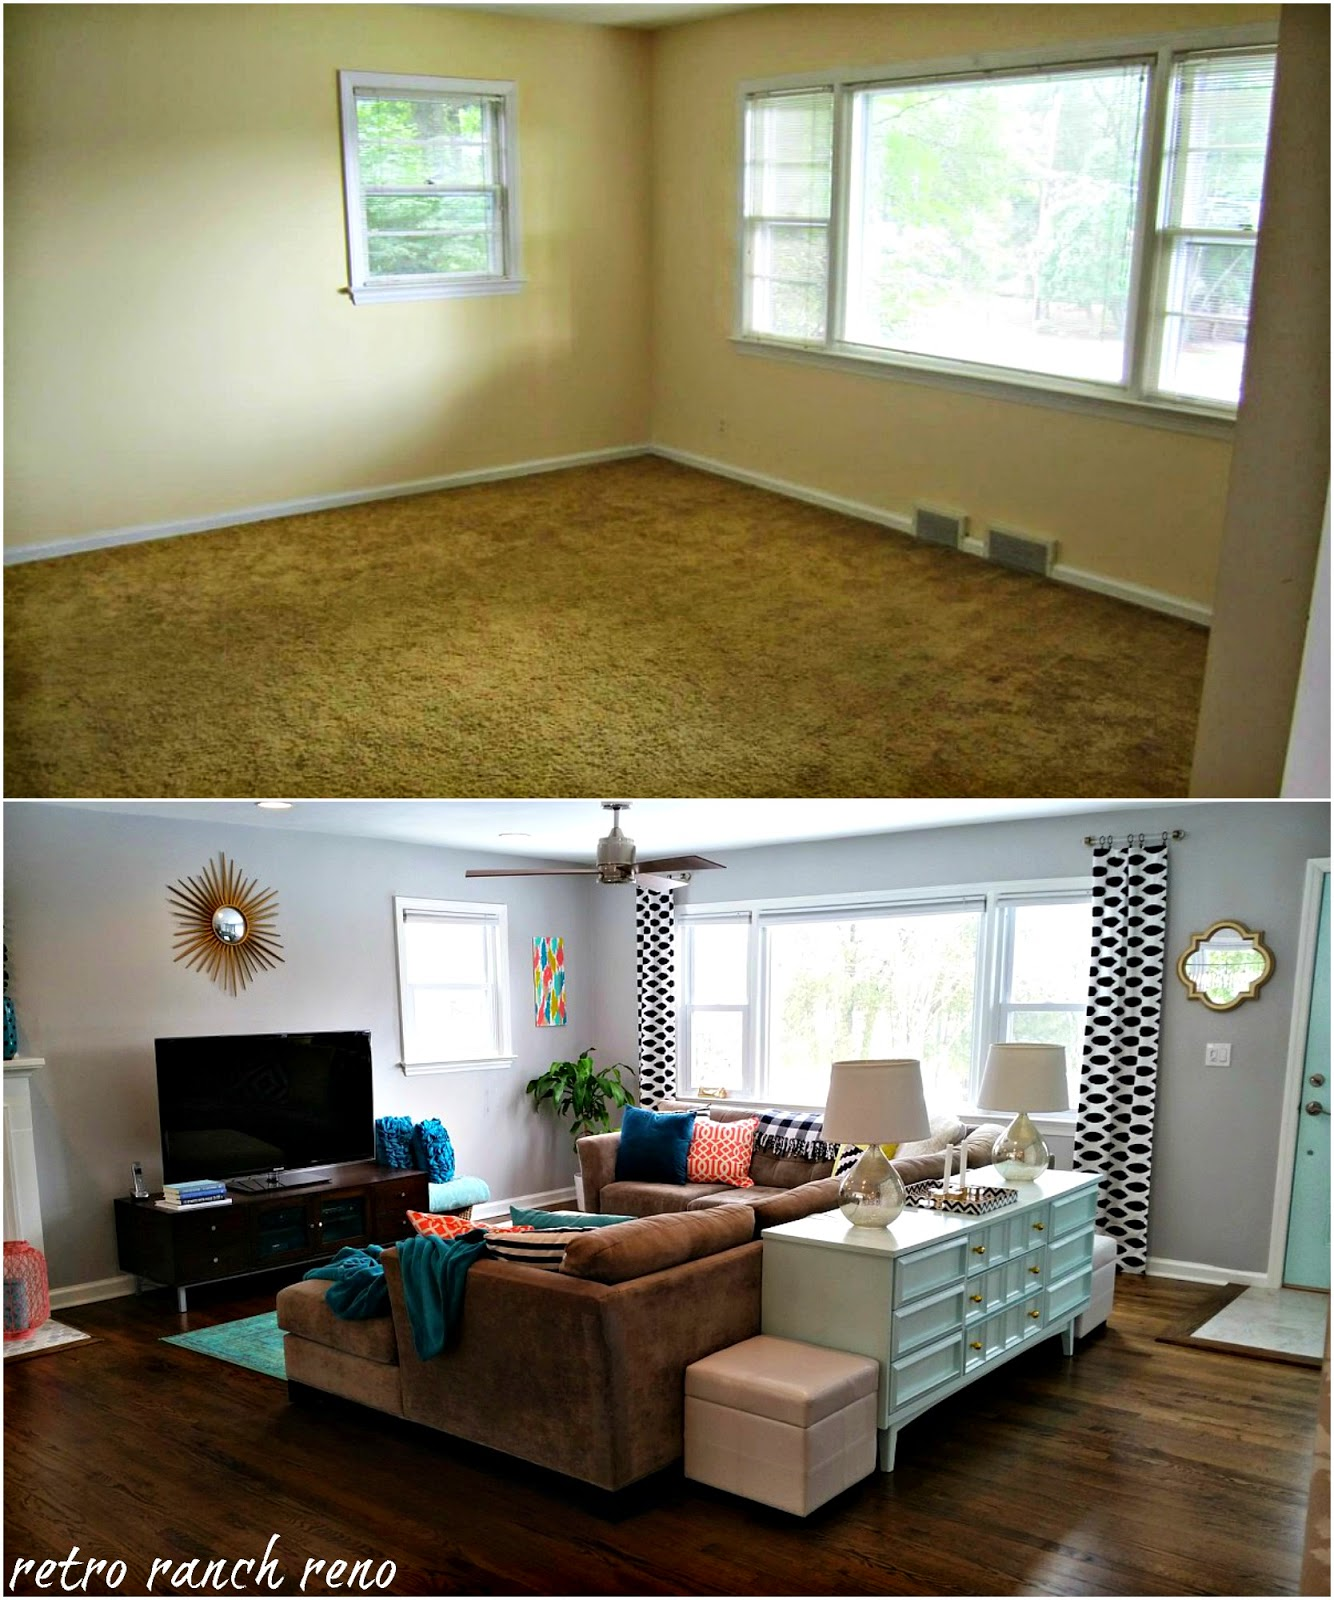 Living Room: Retro Ranch Reno: Our Rancher: Before & After